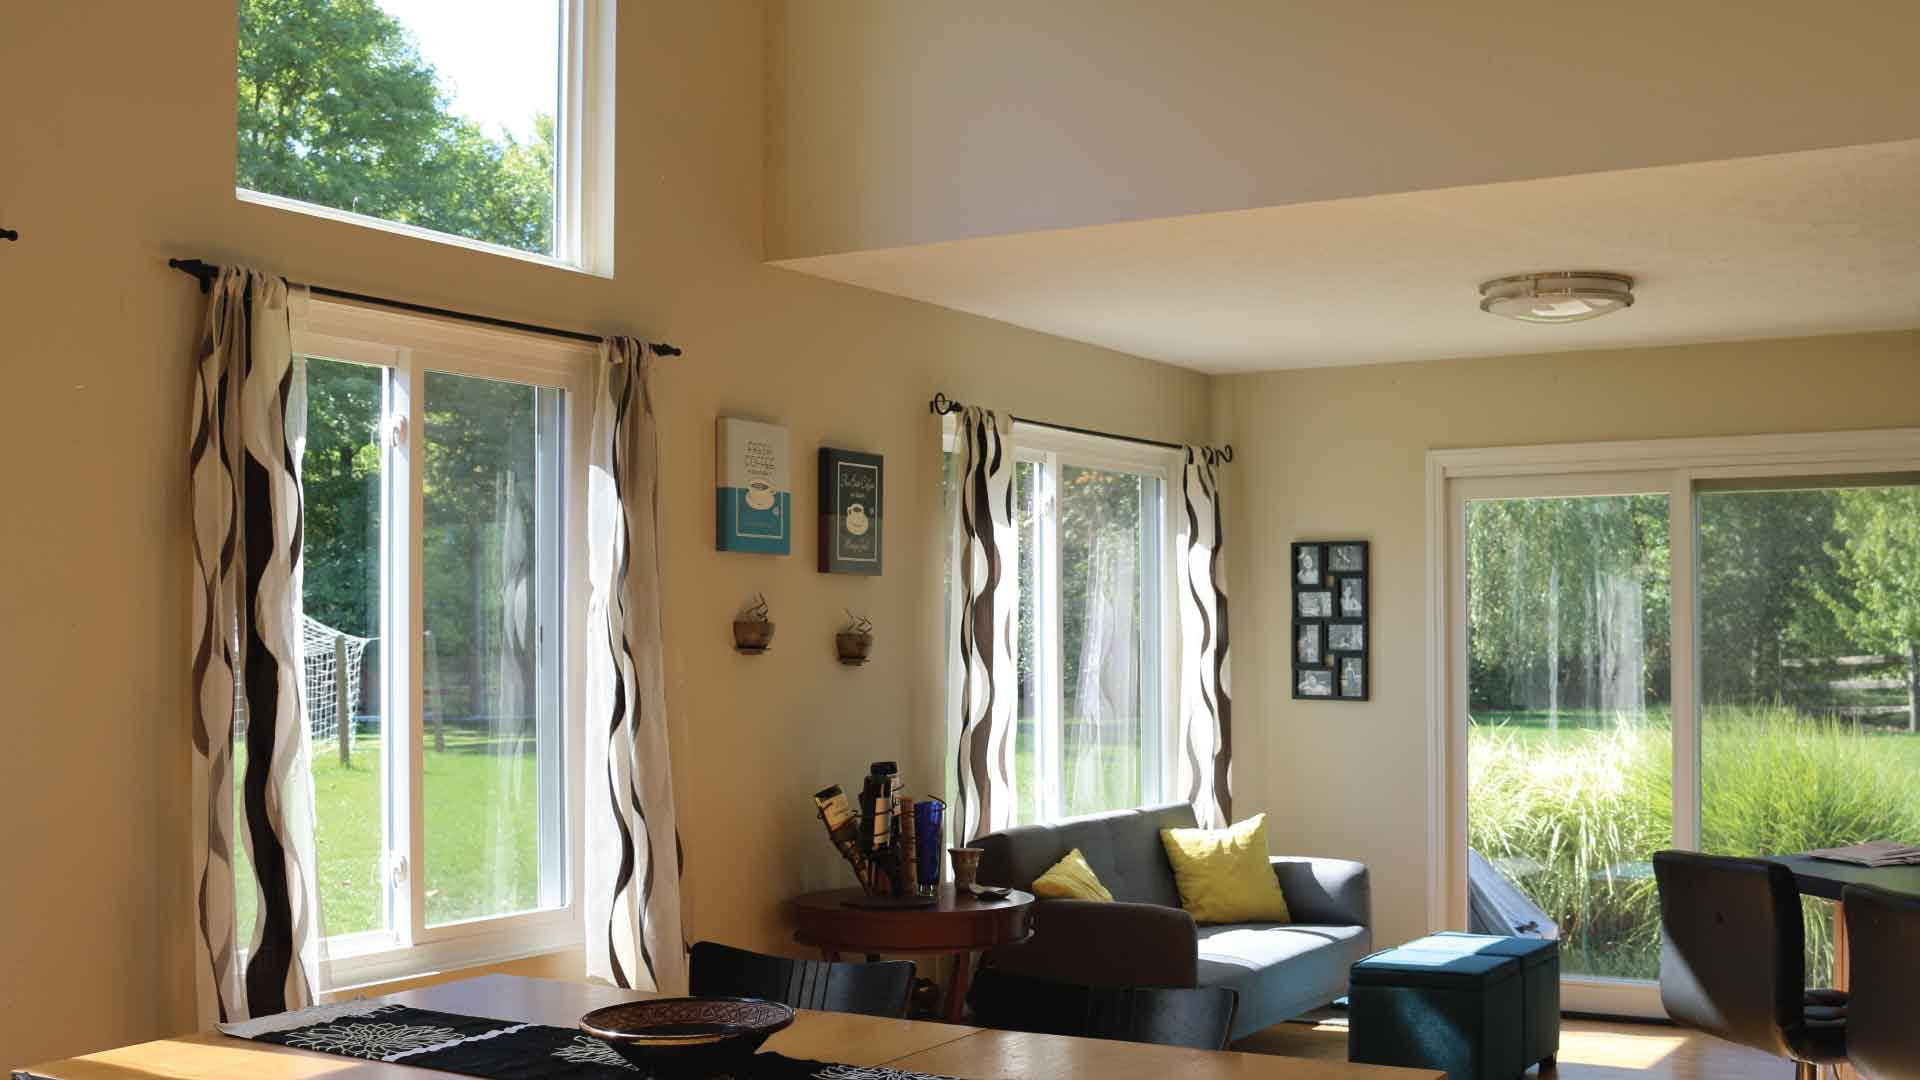 Best Value Replacement Windows, Entry Doors, Vinyl Siding, And Roofing In  Spokane Valley, WA